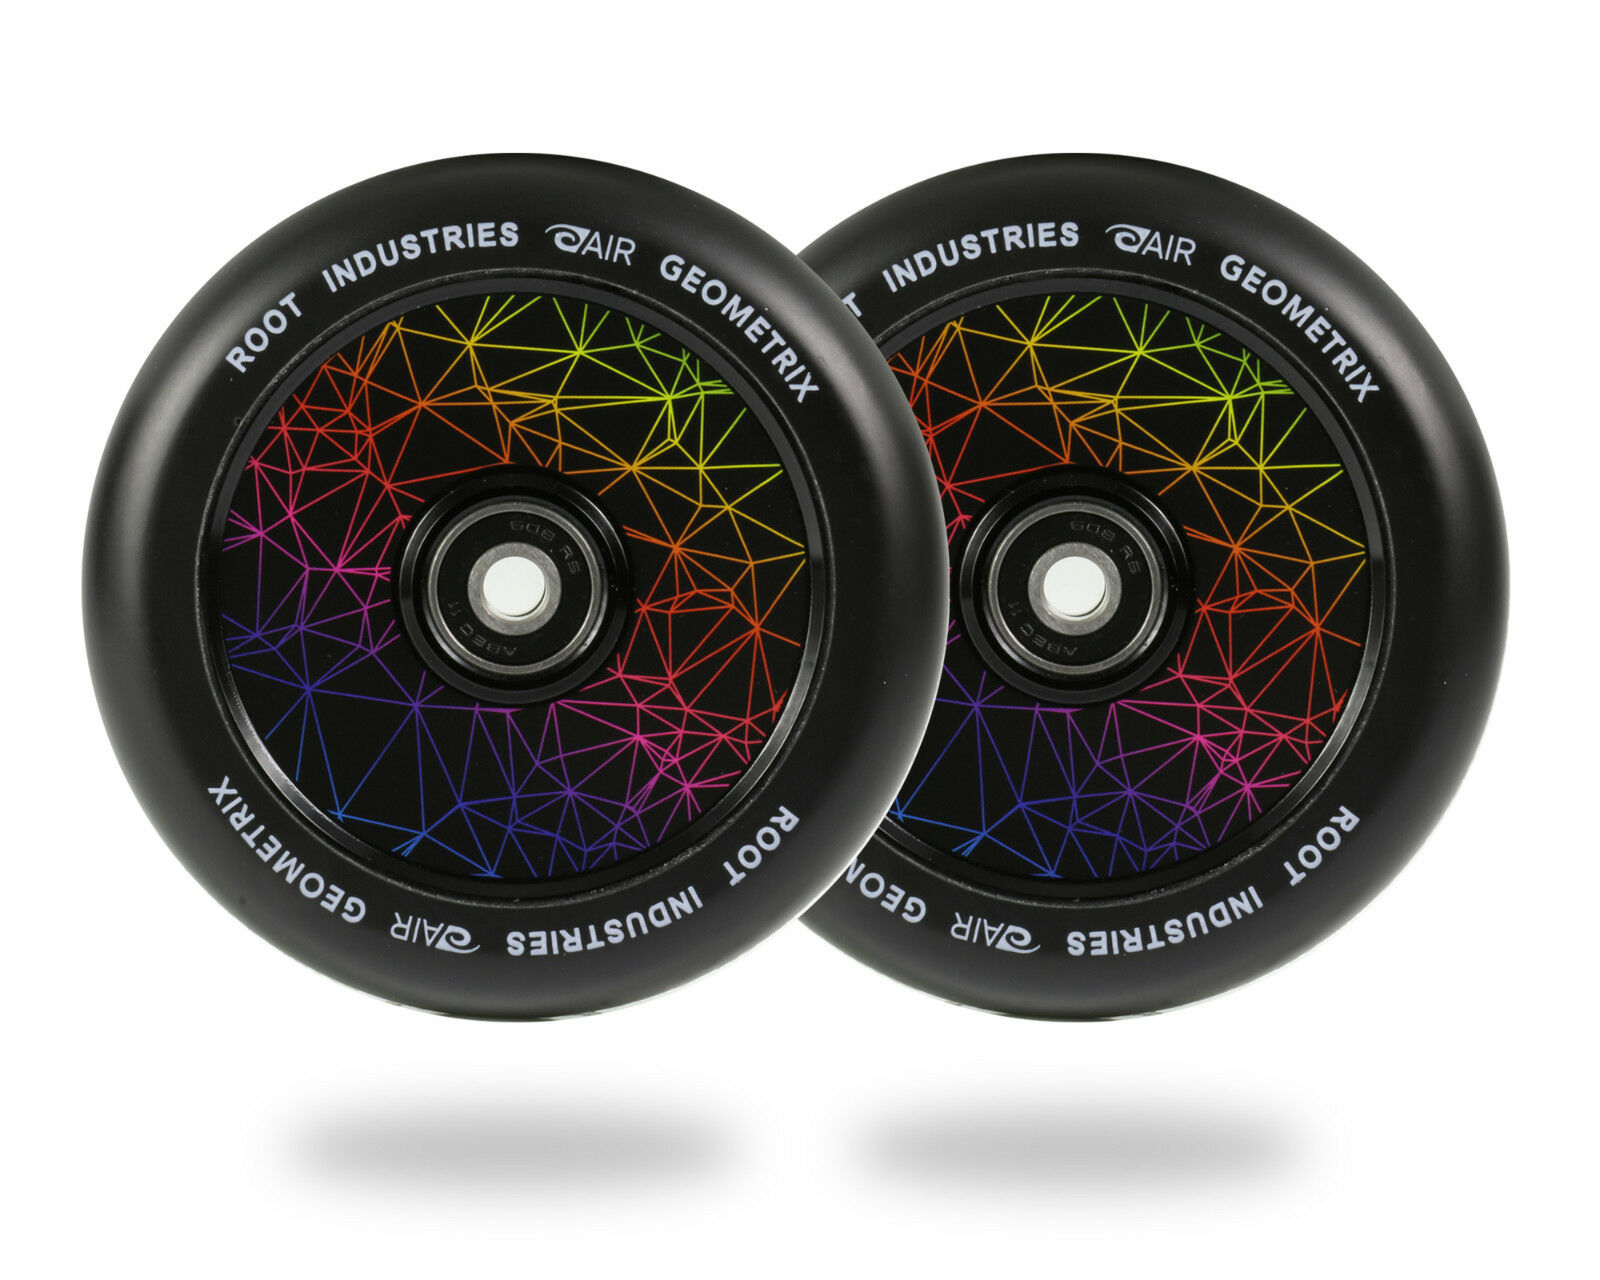 ROOT INDUSTRIES SCOOTER WHEELS GEOMETRIX 110mm and 120mm